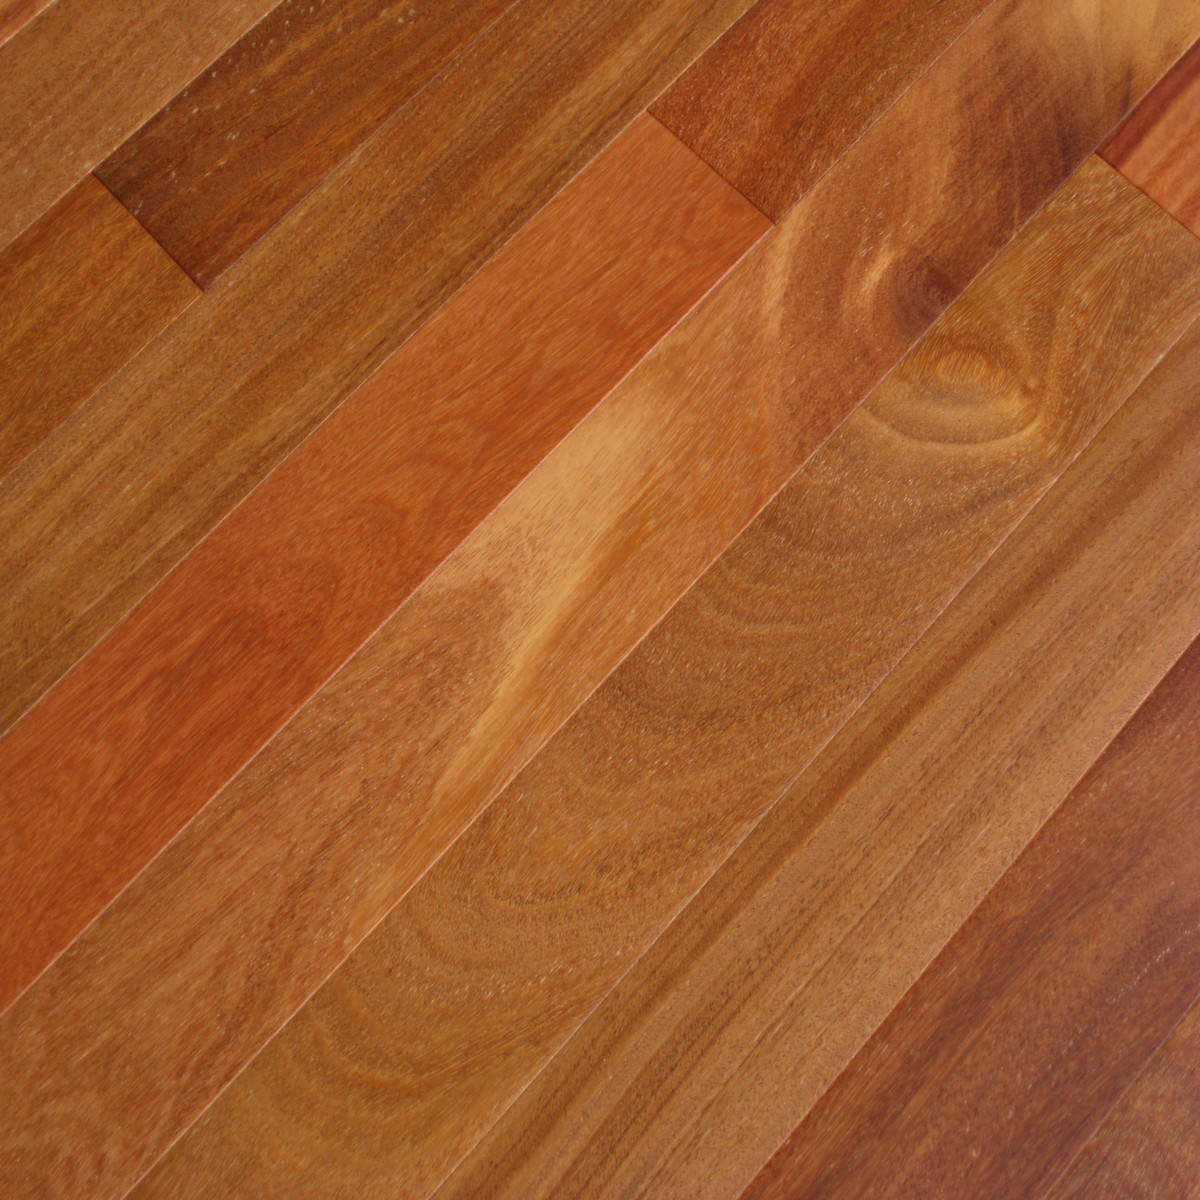 Cumaru dark brazilian teak hardwood flooring for Hardwood floors or carpet